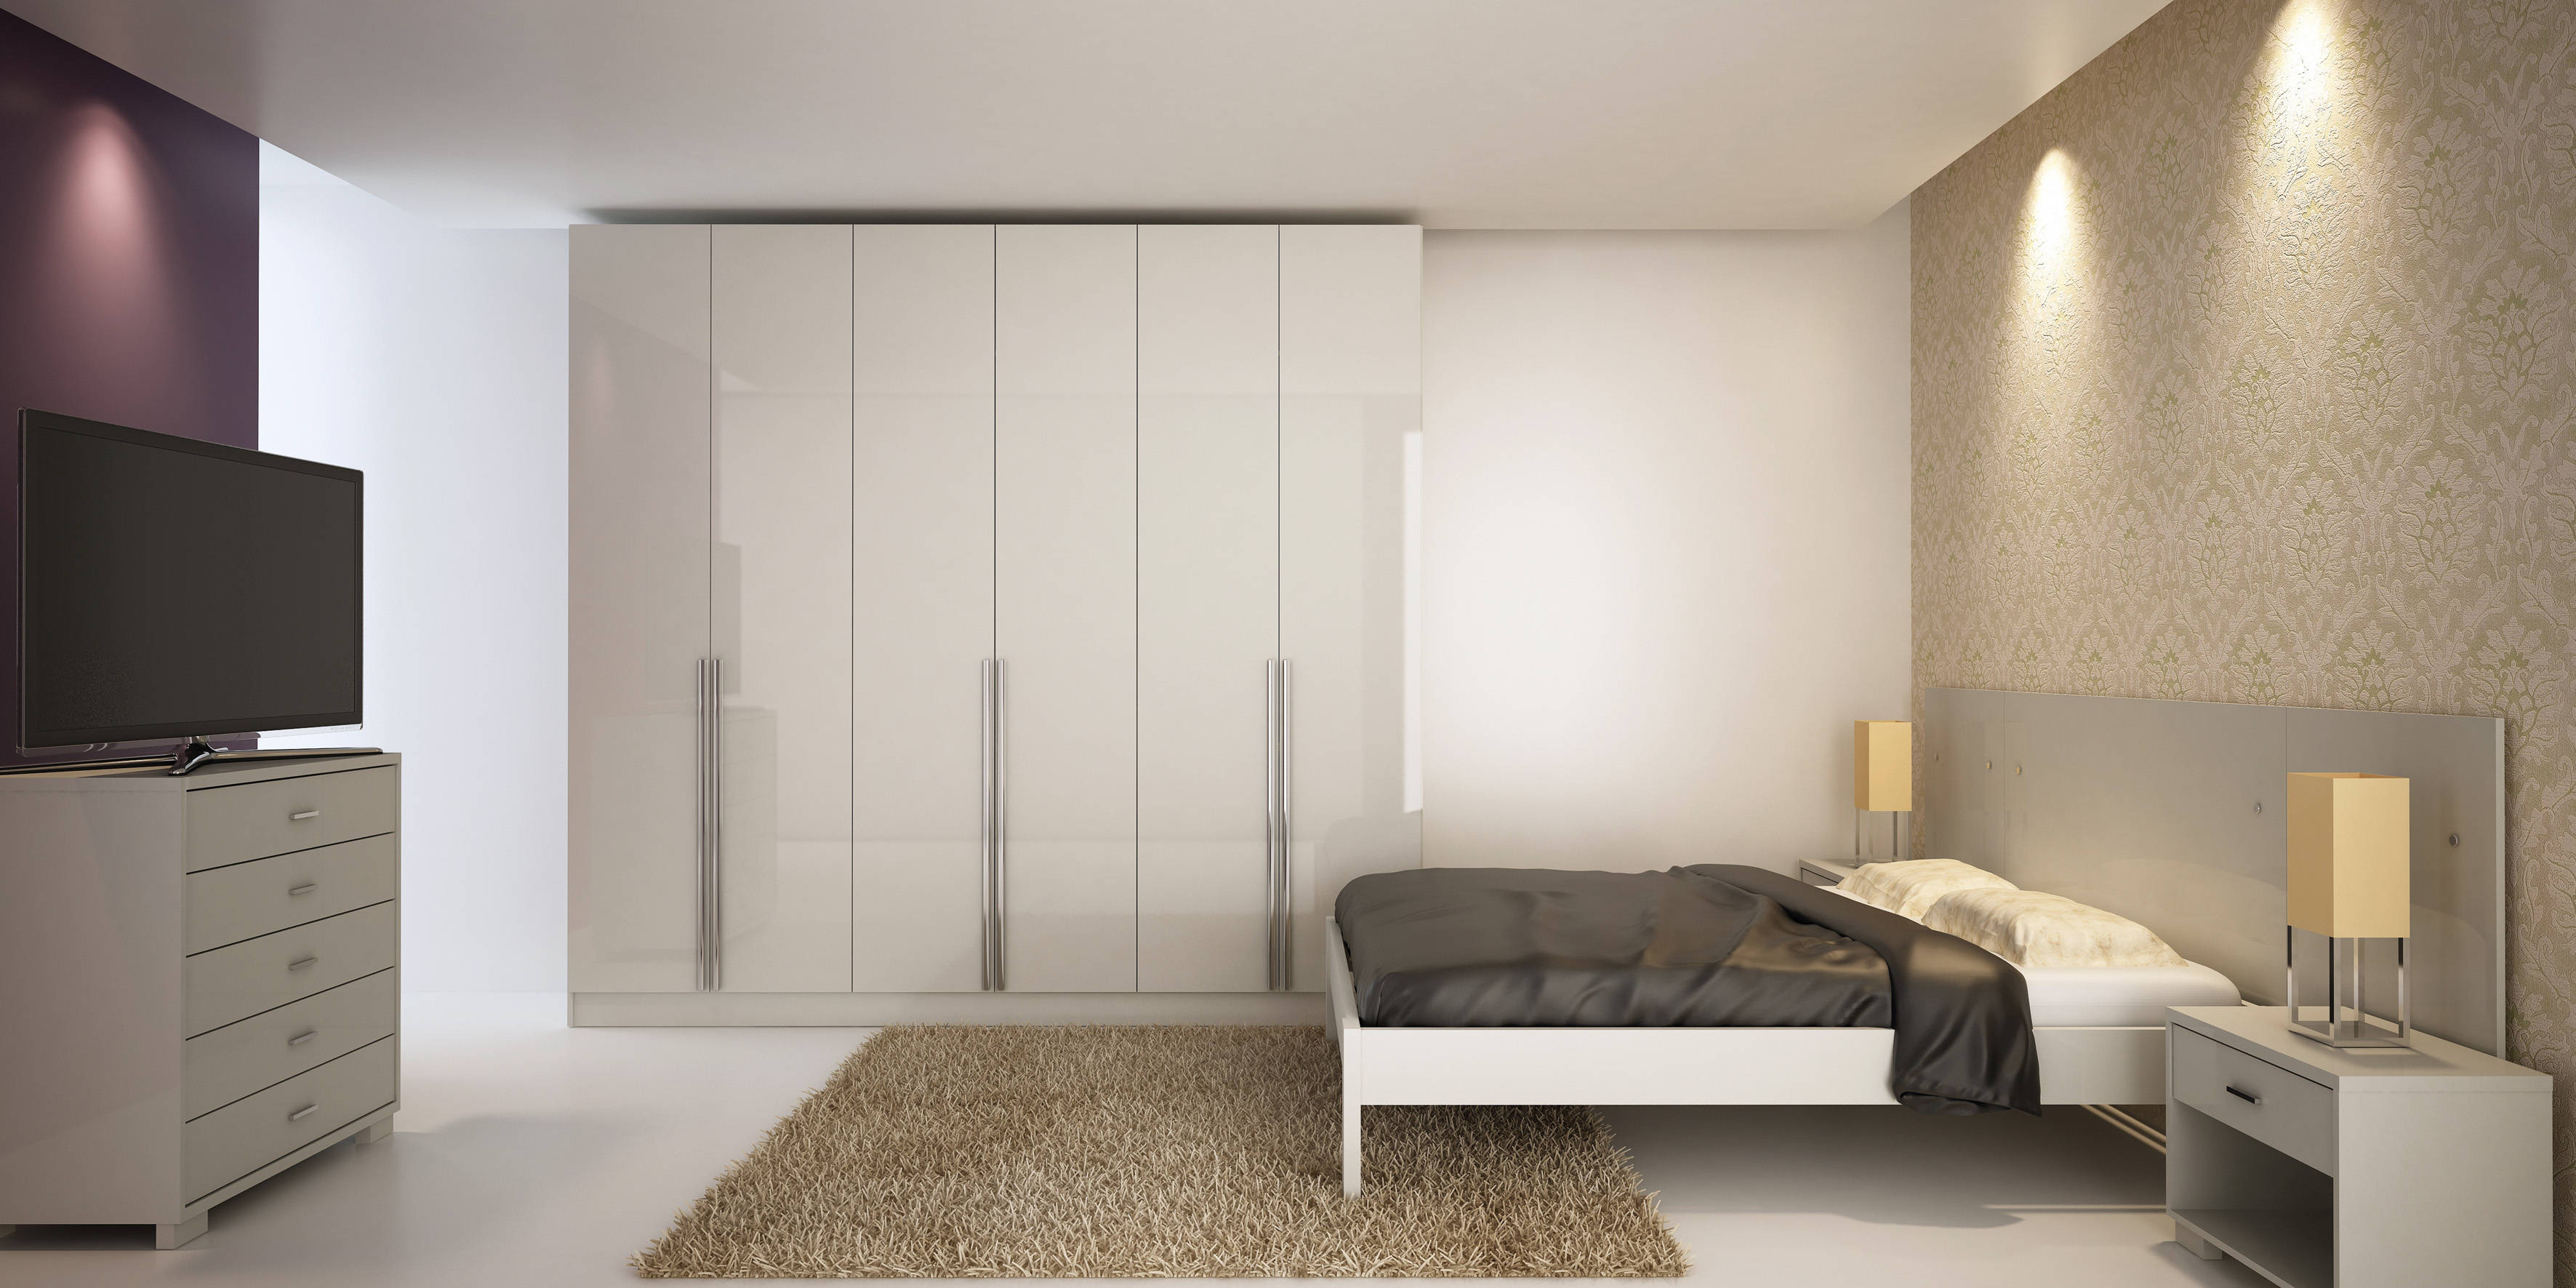 Eldridge Modern White Gloss MDF Drawers Doors Wardrobe - Manhattan bedroom furniture